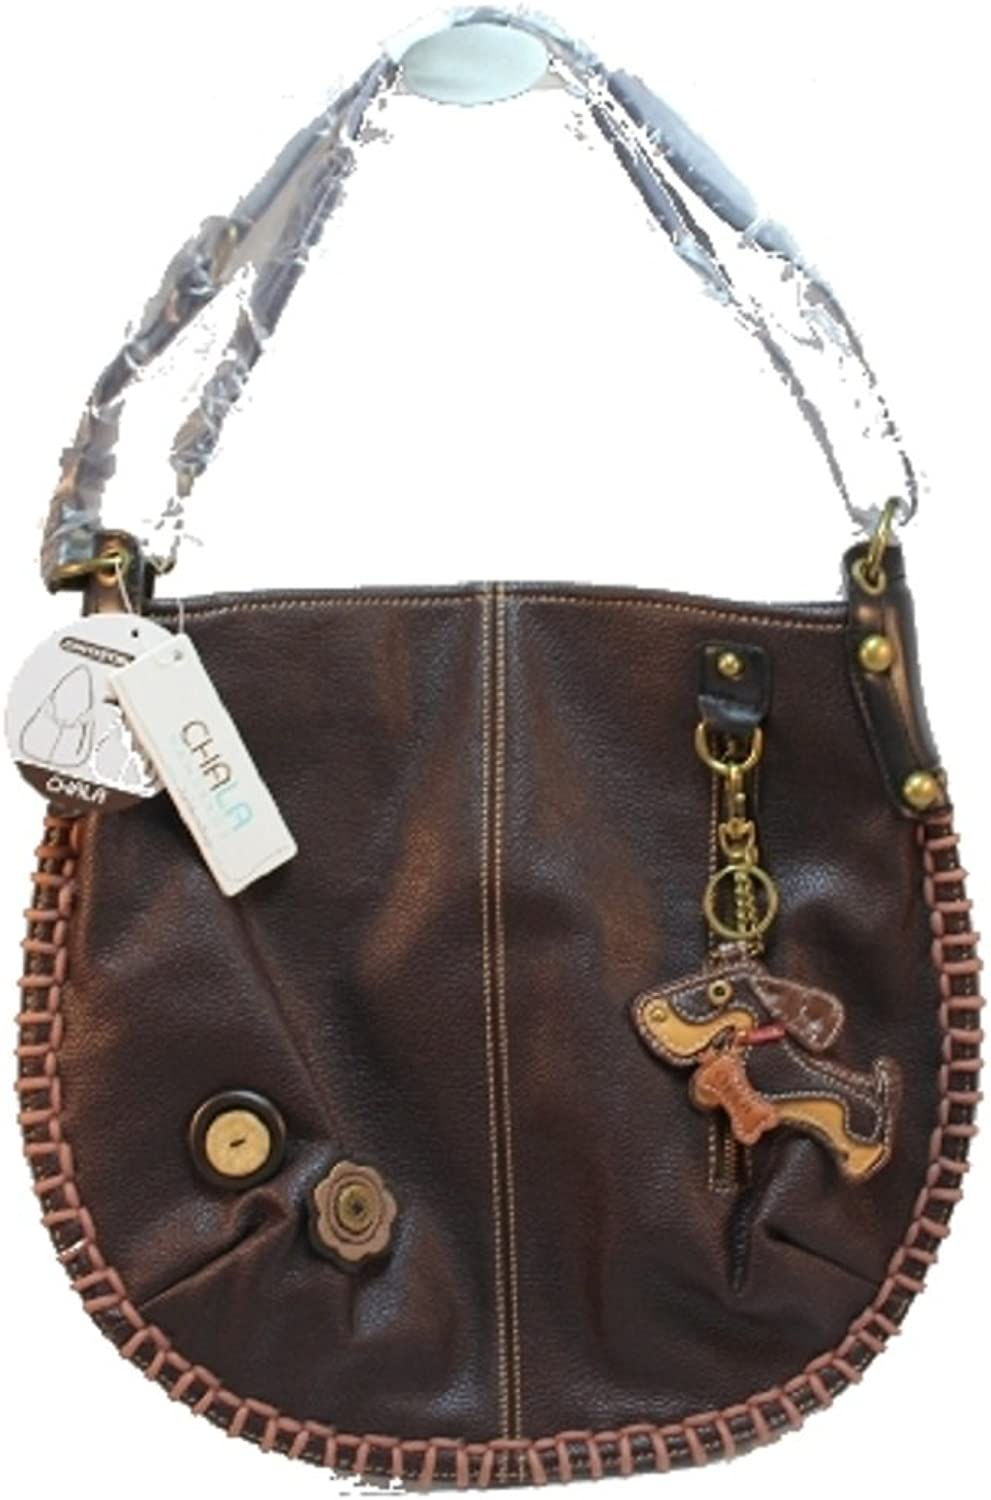 Chala Charming Congreenible Hobo xbody Bag